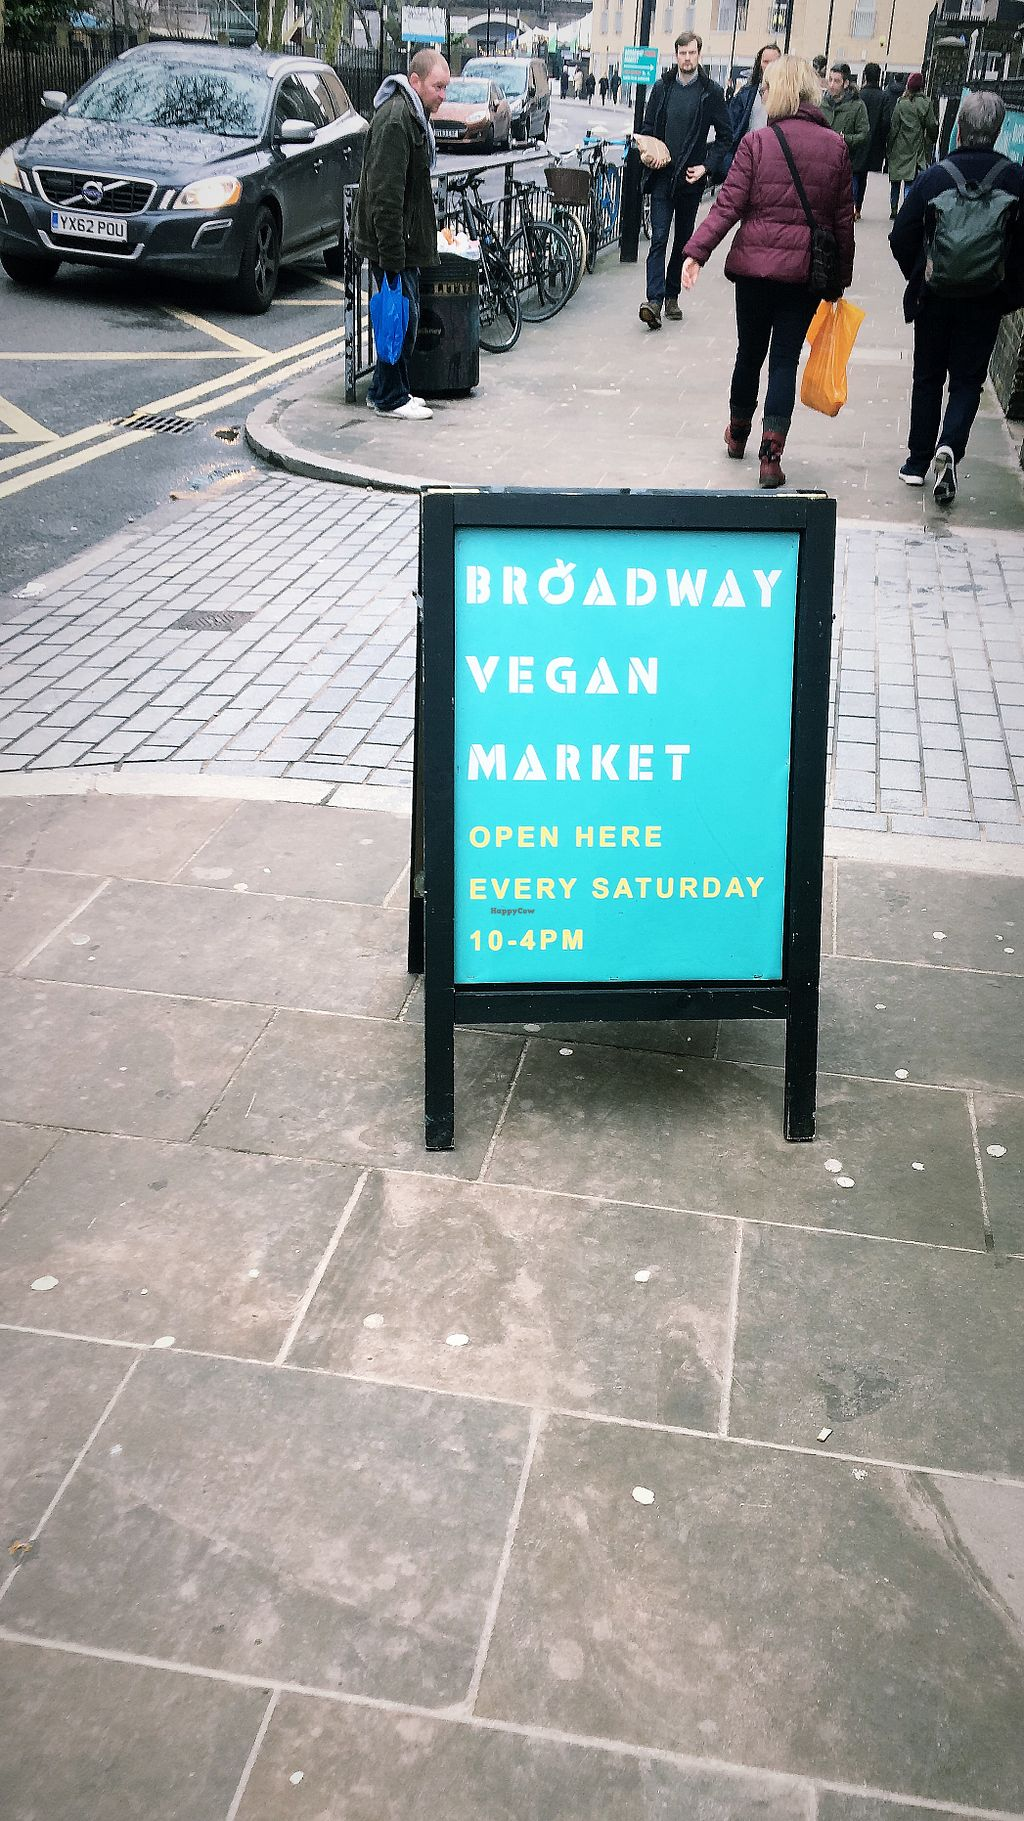 "Photo of Broadway Vegan Market  by <a href=""/members/profile/vegan.rose1"">vegan.rose1</a> <br/>Broadway vegan market <br/> May 26, 2018  - <a href='/contact/abuse/image/102672/405421'>Report</a>"